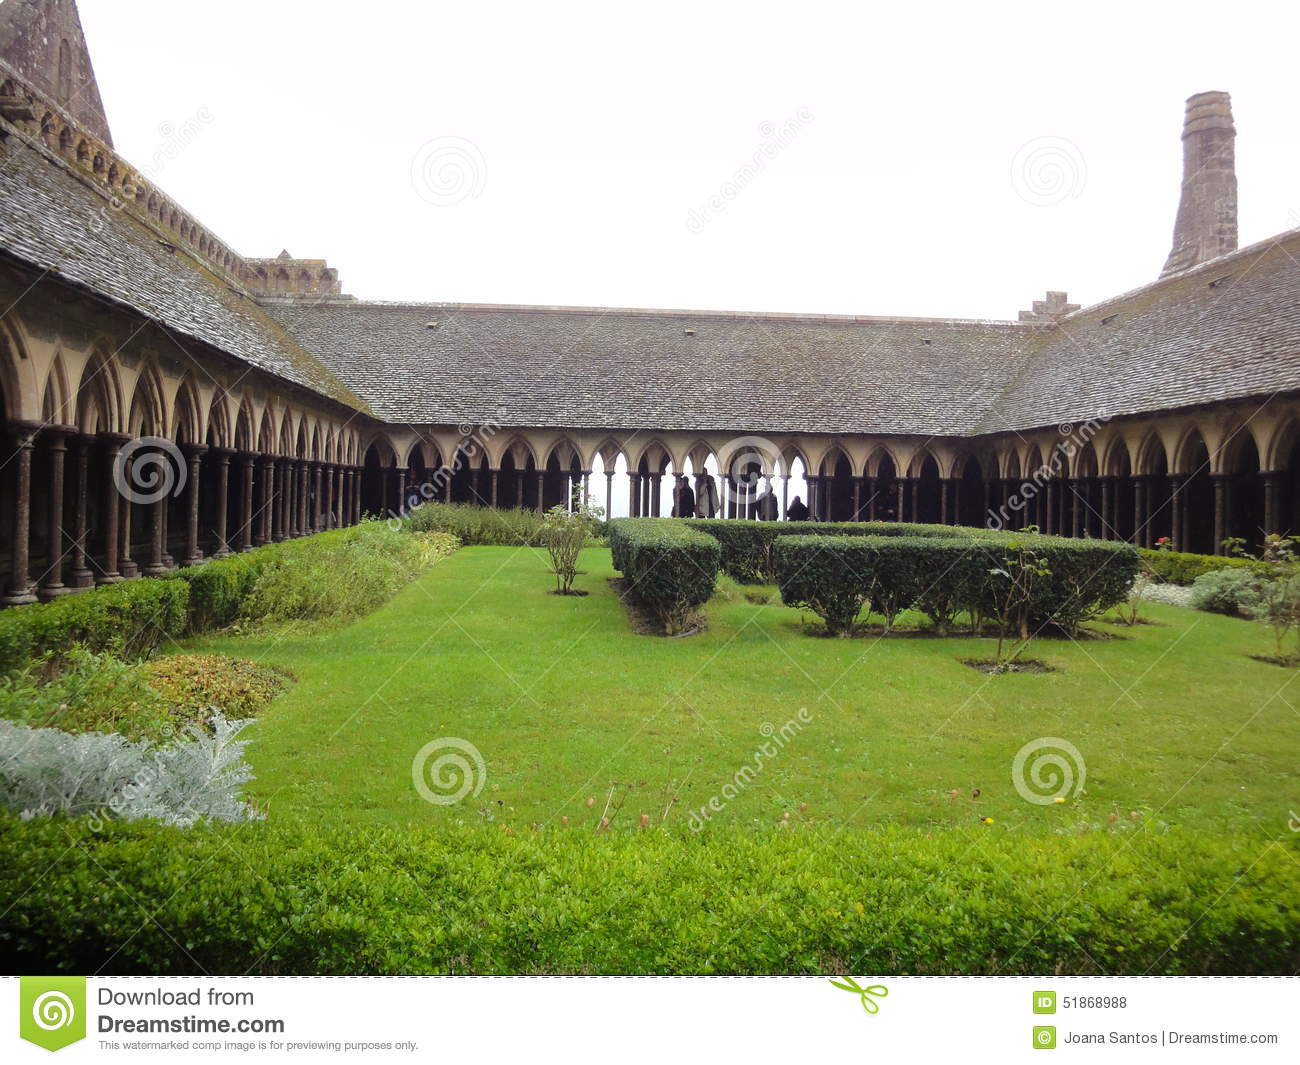 Abbaye et jardins de mont saint michel normandie france for Au jardin st michel pontorson france